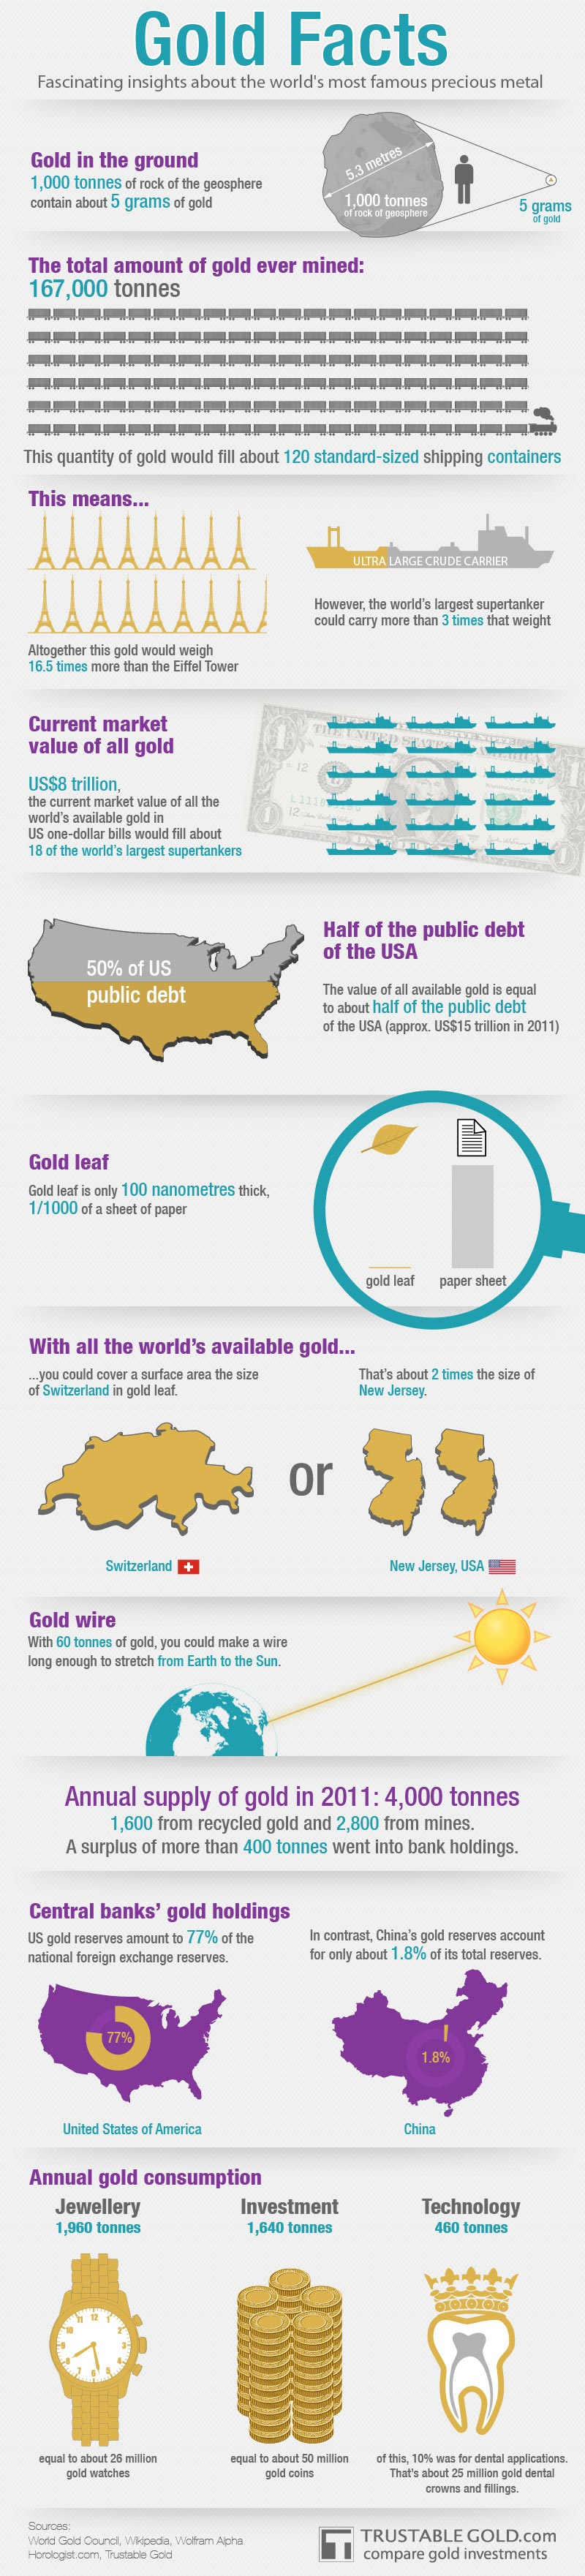 Interesting facts about Gold